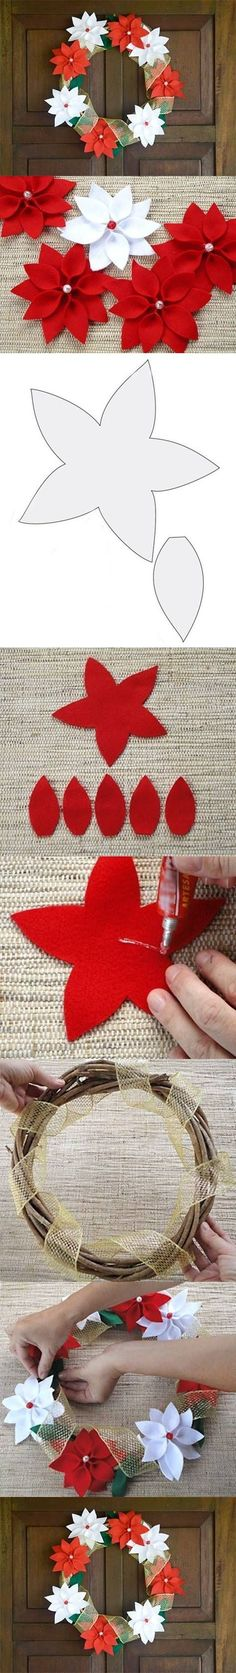 DIY Felt Christmas Wreath DIY Projects | UsefulDIY.com Follow Us on Facebook == http://www.facebook.com/UsefulDiy